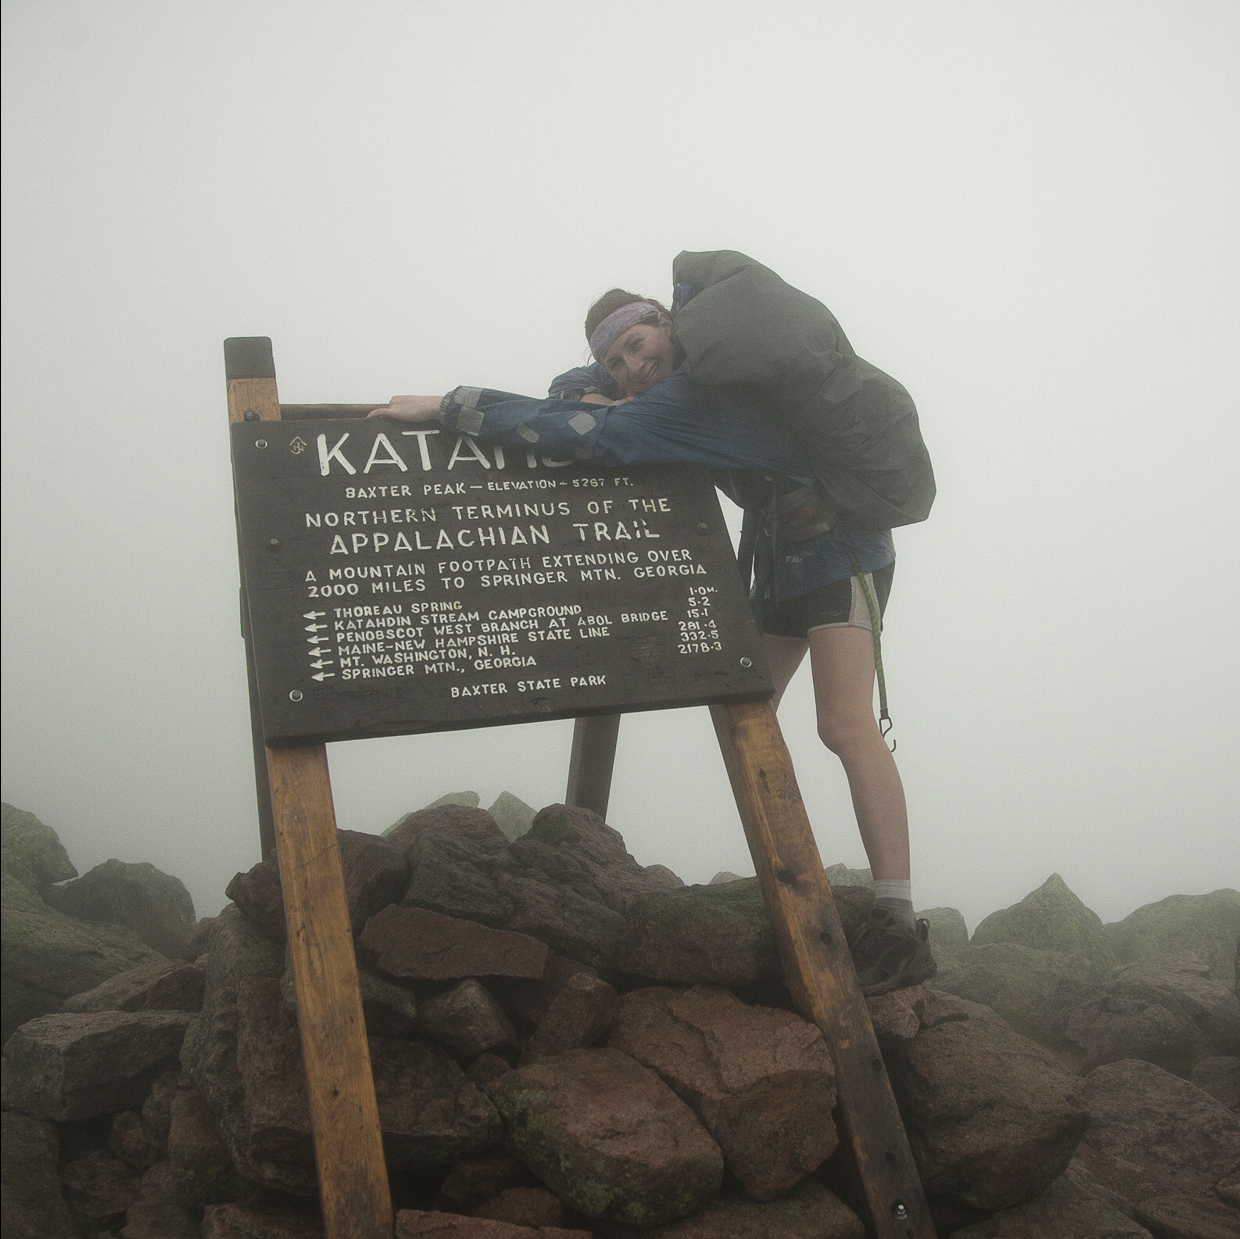 Melissa at the end of her 2,181-mile Appalachian Trail journey, Sept. 5, 2011.